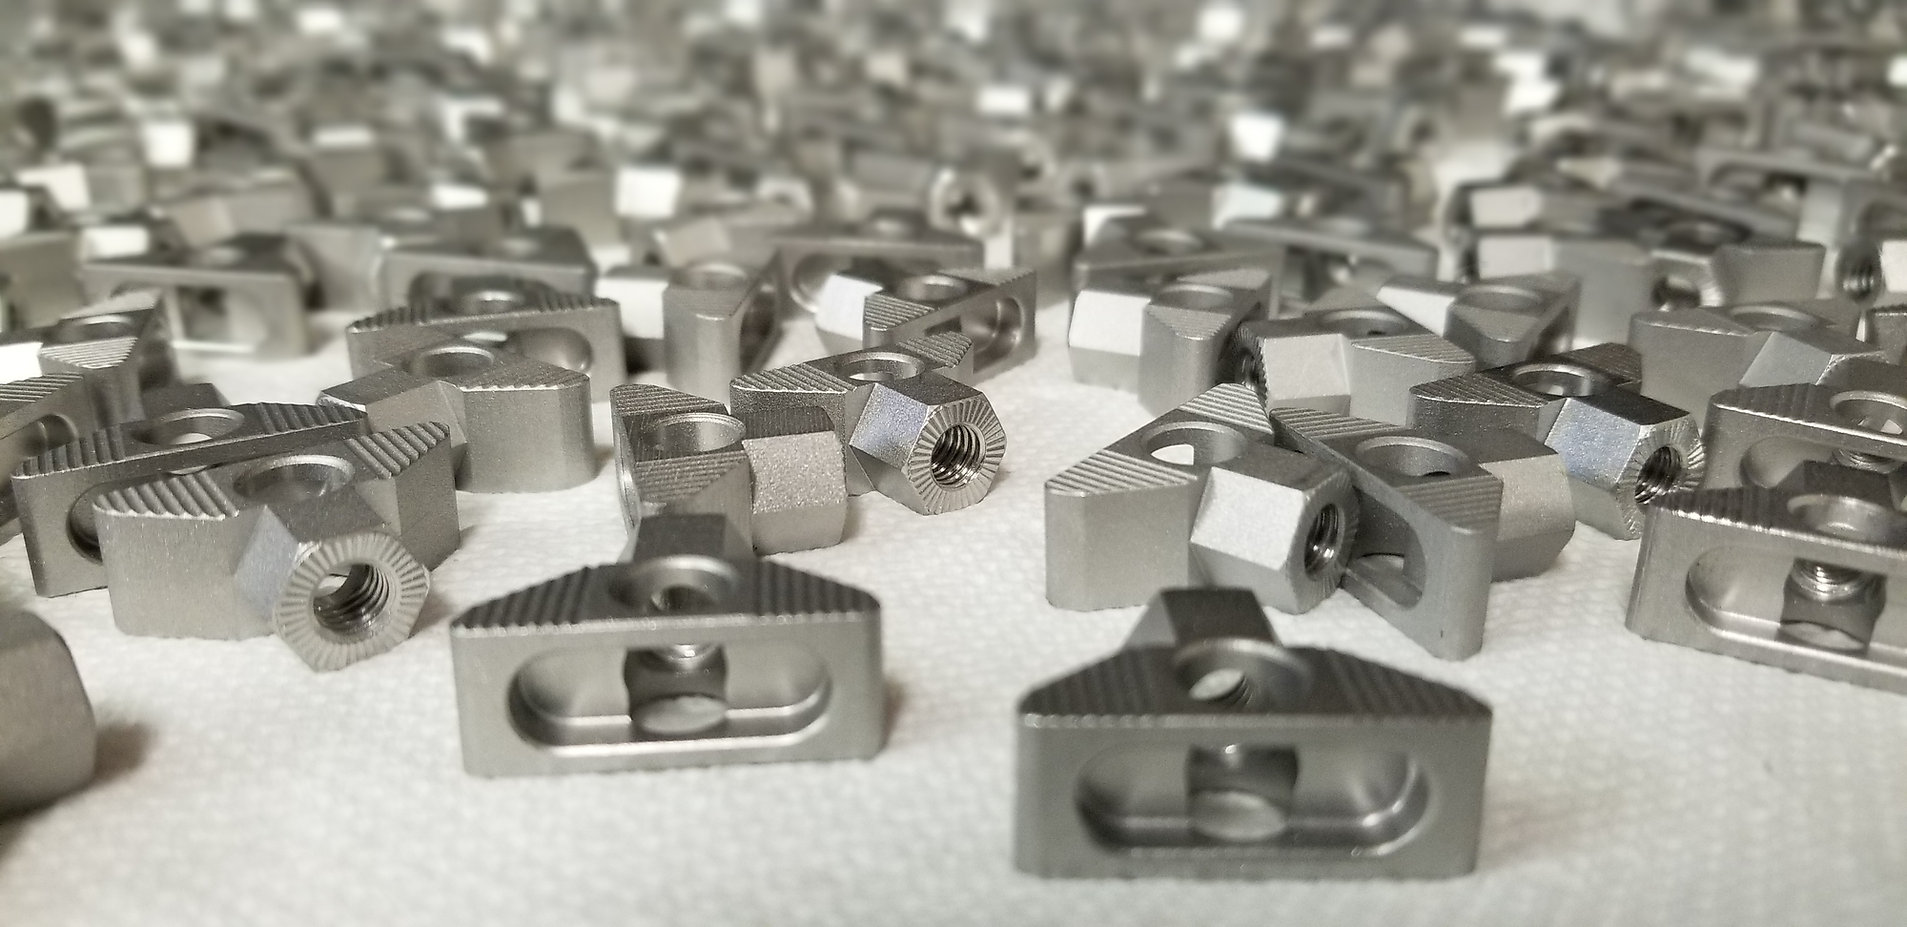 17-4PH Orthopedic Fixation Device Connector